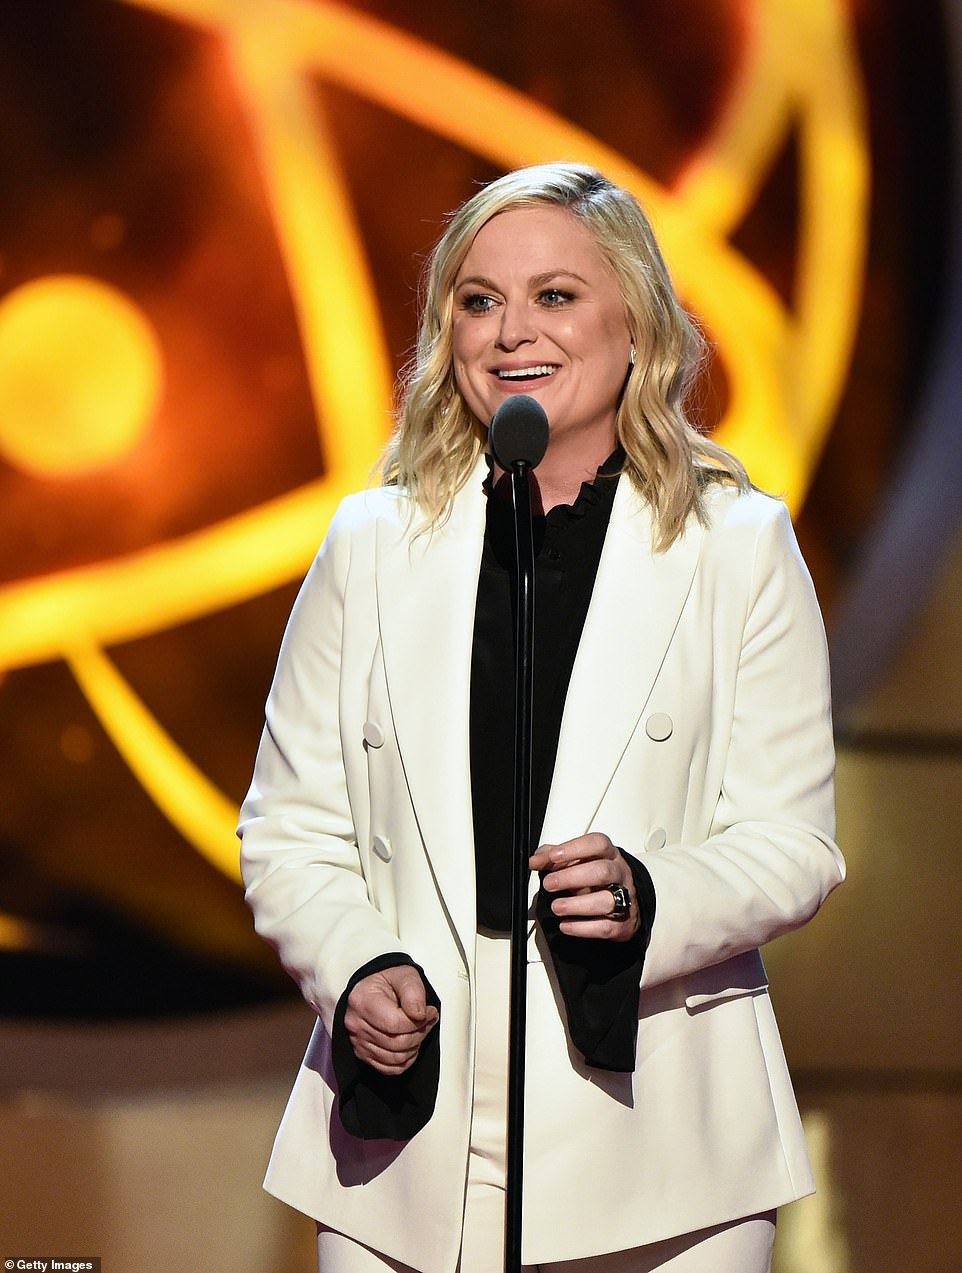 Surprise! Judge Judy super-fan Amy Poehler was the surprise celebrity guest at the show to present the star with a Lifetime Achievement Award